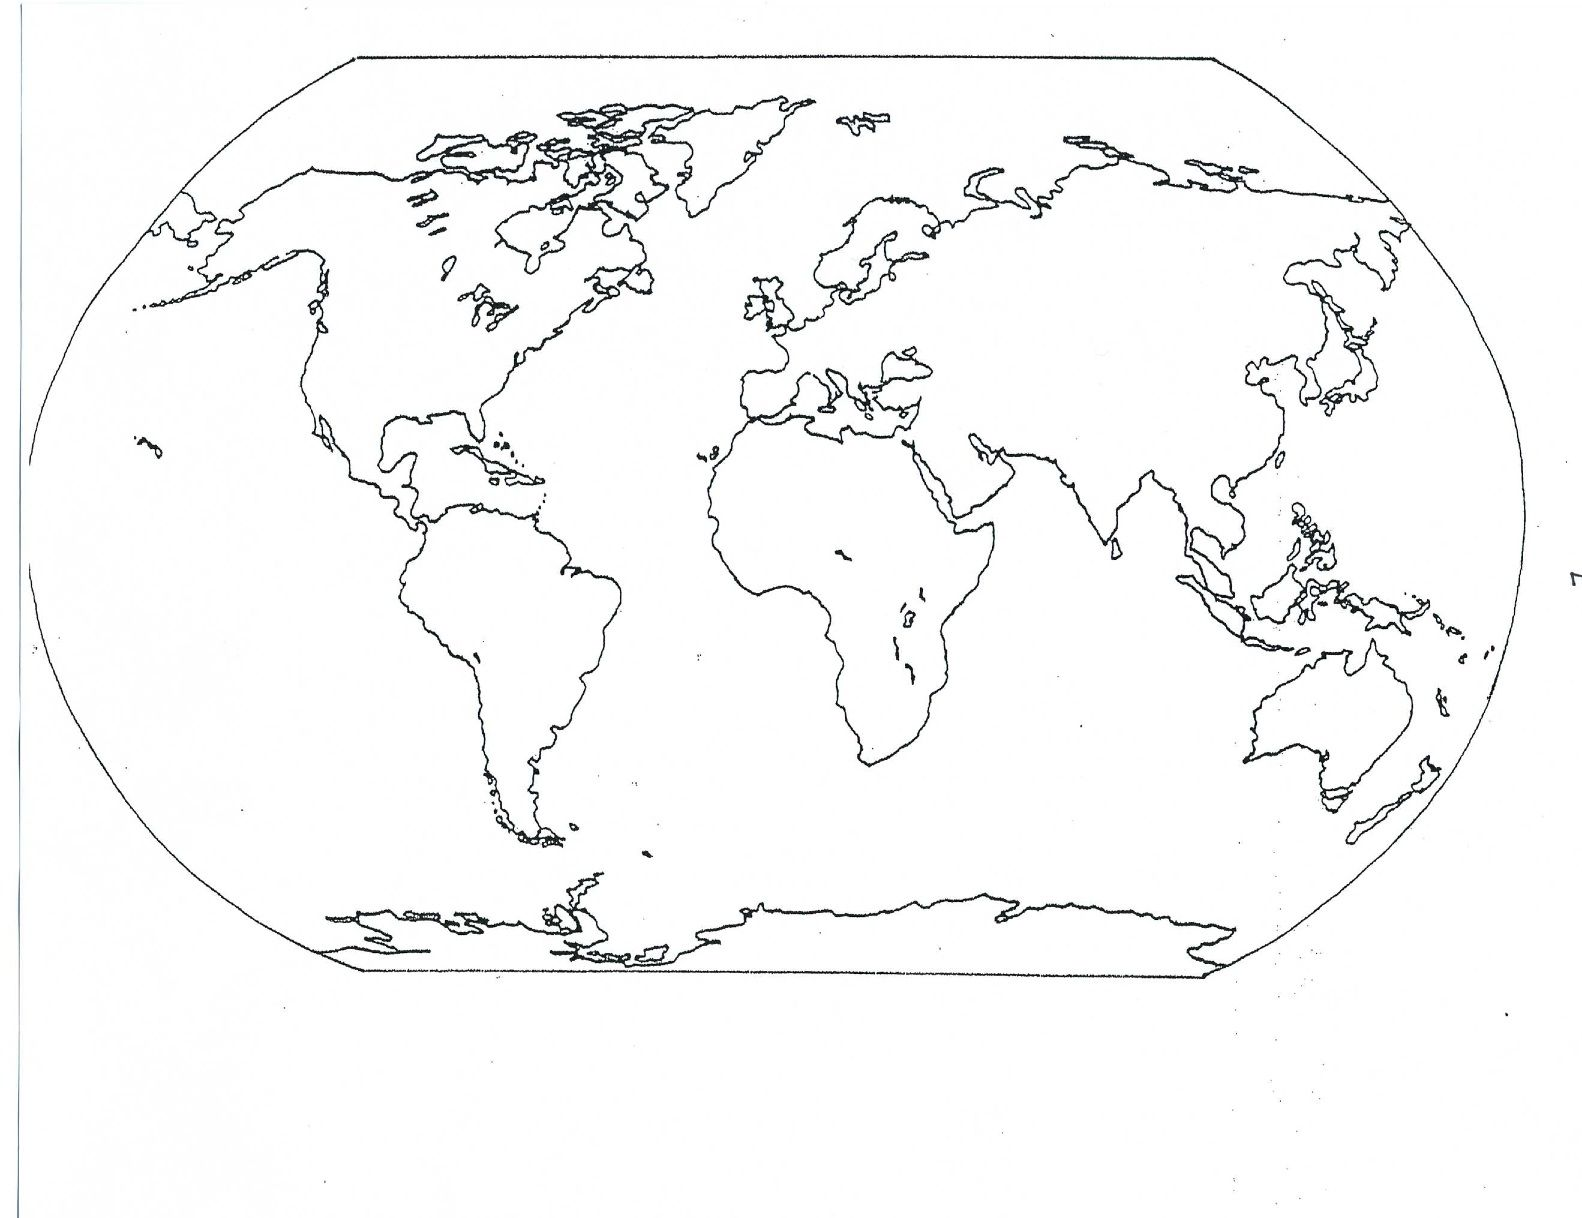 Blank seven continents map mrerrieros blog blank and filled in blank seven continents map mrerrieros blog blank and filled in maps of the continents and gumiabroncs Image collections